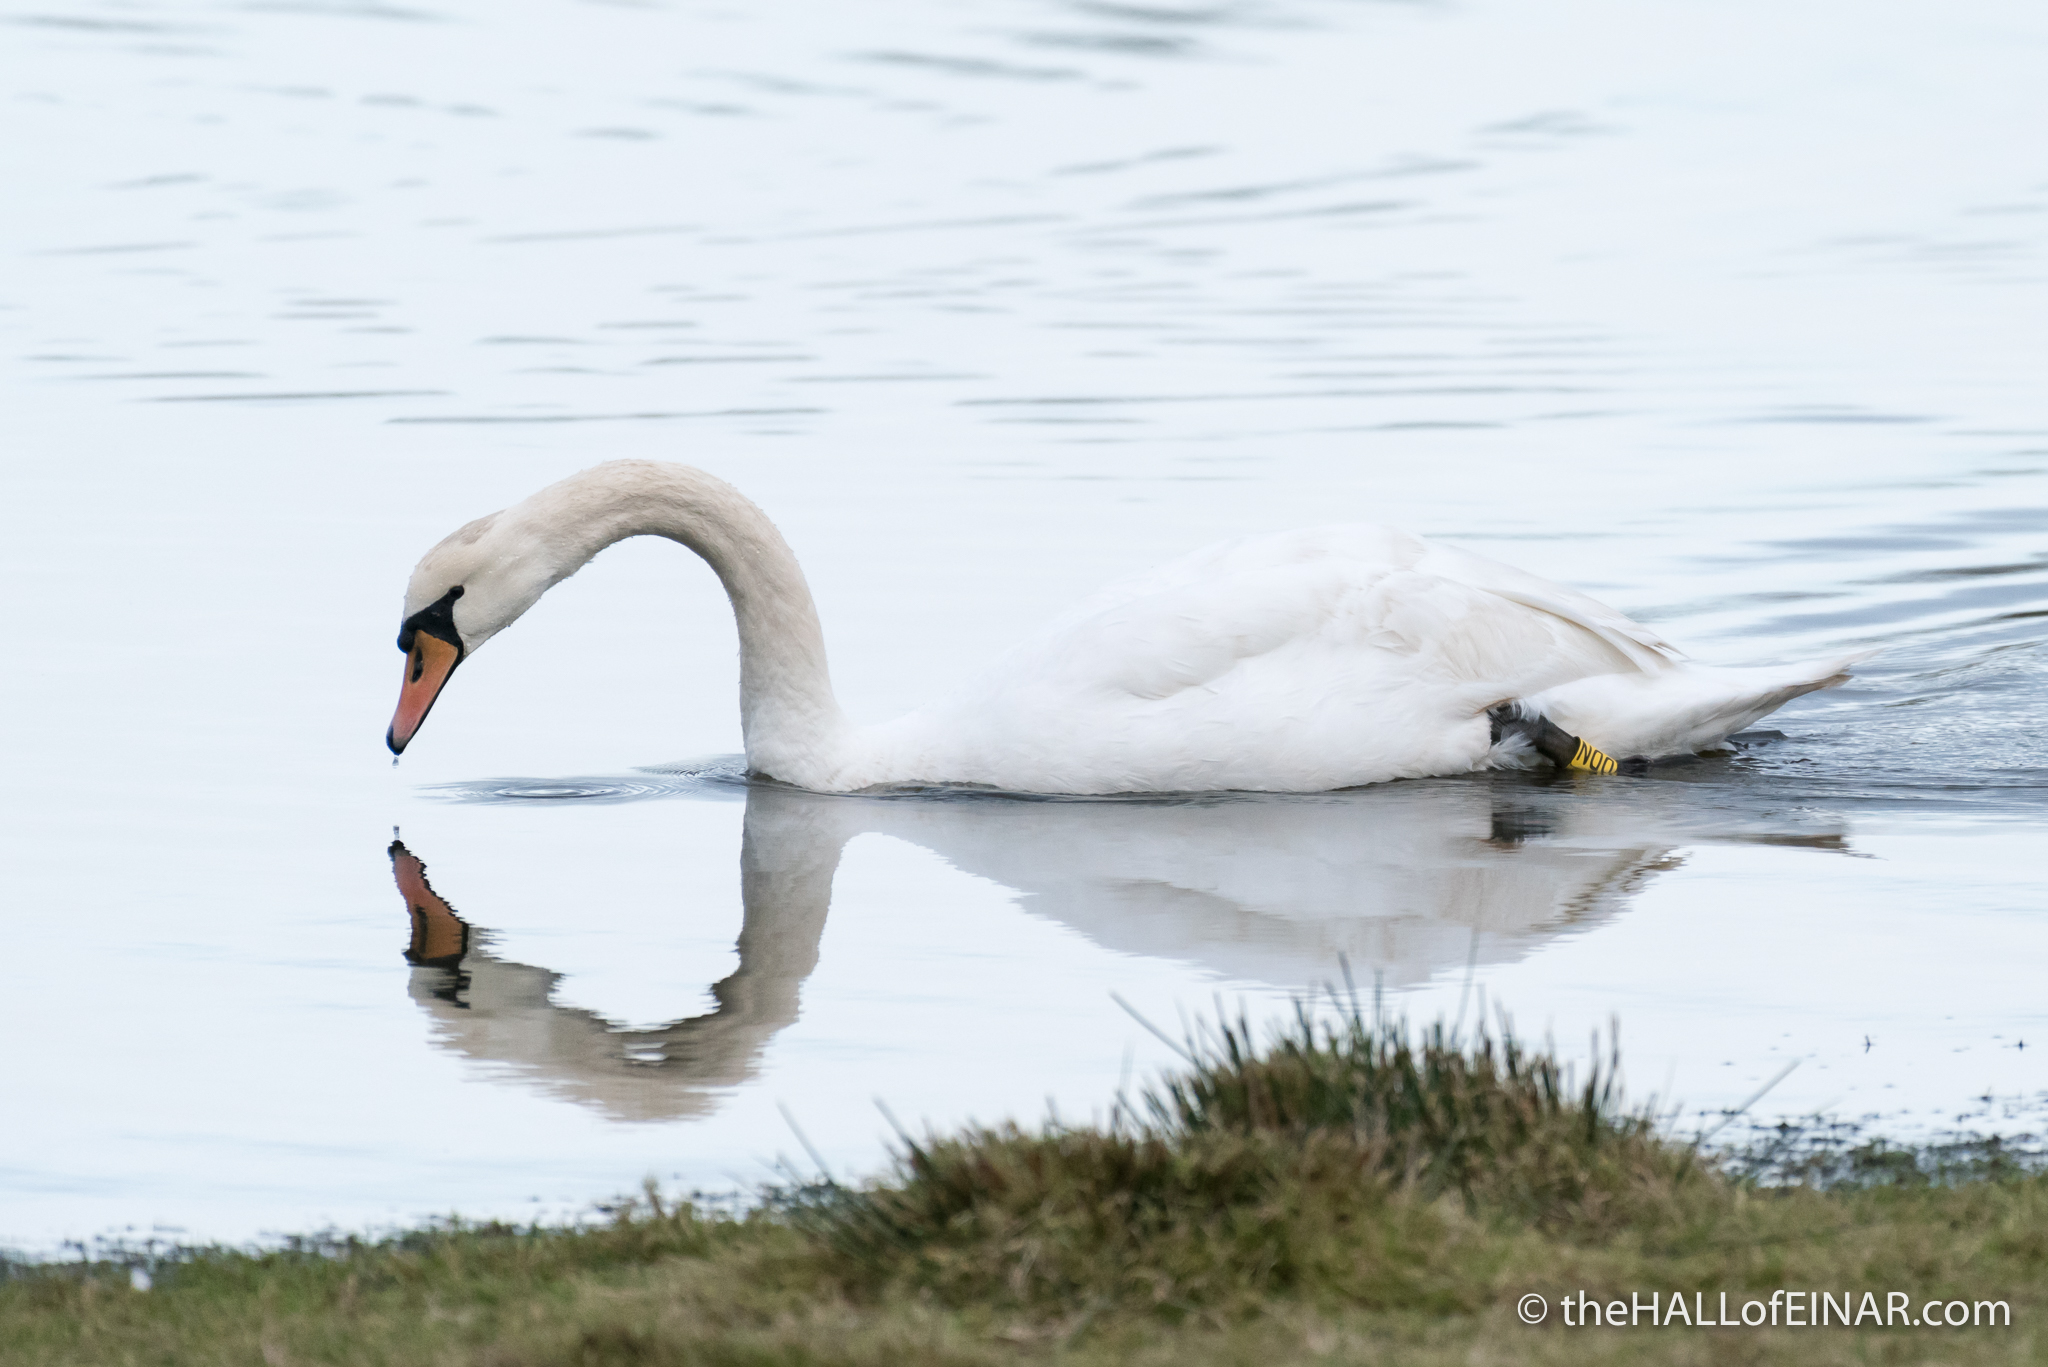 Mute Swan - forty years ago in my nature notebooks - The Hall of Einar - photograph (c) David Bailey (not the)